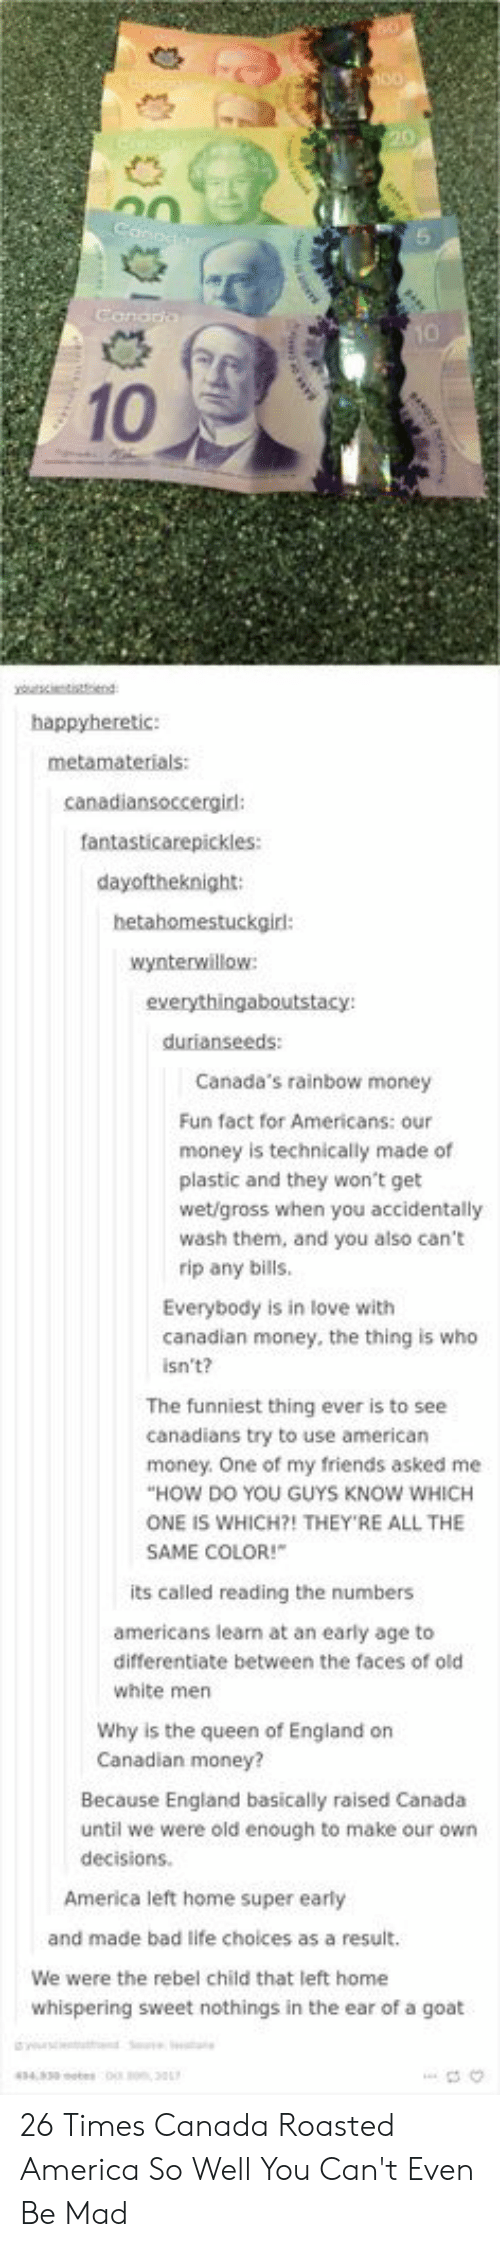 America, Bad, and England: 10  happyheretic:  canadiansoccergird:  fantasticarepickles:  dayoftheknight:  hetahomestuckgir:  wynterwillow  durianseeds:  Canada's rainbow money  Fun fact for Americans: our  money is technically made of  plastic and they won't get  wet/gross when you accidentally  wash them, and you also can't  rip any bills  Everybody is in love with  canadian money, the thing is who  isn't?  The funniest thing ever is to see  canadians try to use american  HOW DO YOU GUYS KNOW WHICH  SAME COLOR!  money. One of my friends asked me  ONE IS WHICH?! THEY'RE ALL THE  its called reading the numbers  americans learn at an early age to  differentiate between the faces of old  white men  Why is the queen of England on  Canadian money?  Because England basically raised Canada  until we were old enough to make our own  decisions.  America left home super early  and made bad life choices as a result.  We were the rebel child that left home  whispering sweet nothings in the ear of a goat 26 Times Canada Roasted America So Well You Can't Even Be Mad